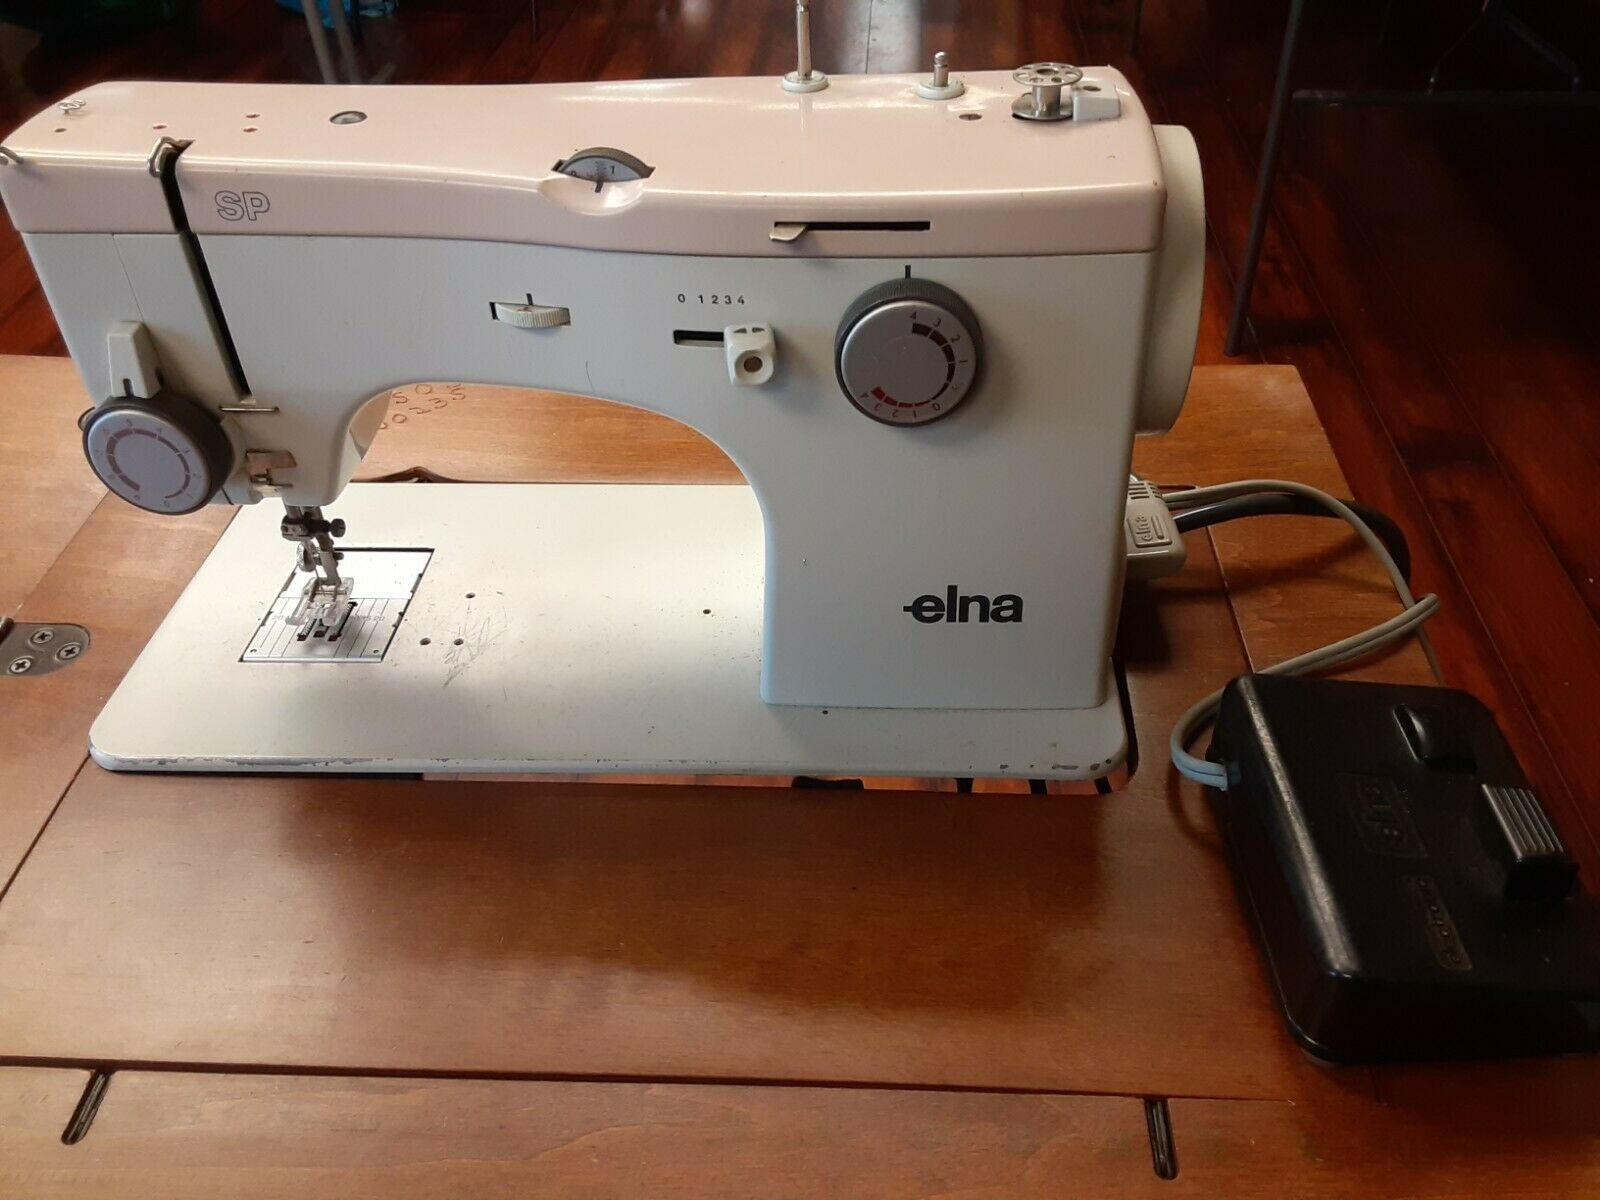 s l1600 - Elna SP Sewing Machine 390B & extras Table Not Included Made in Switzerland NICE